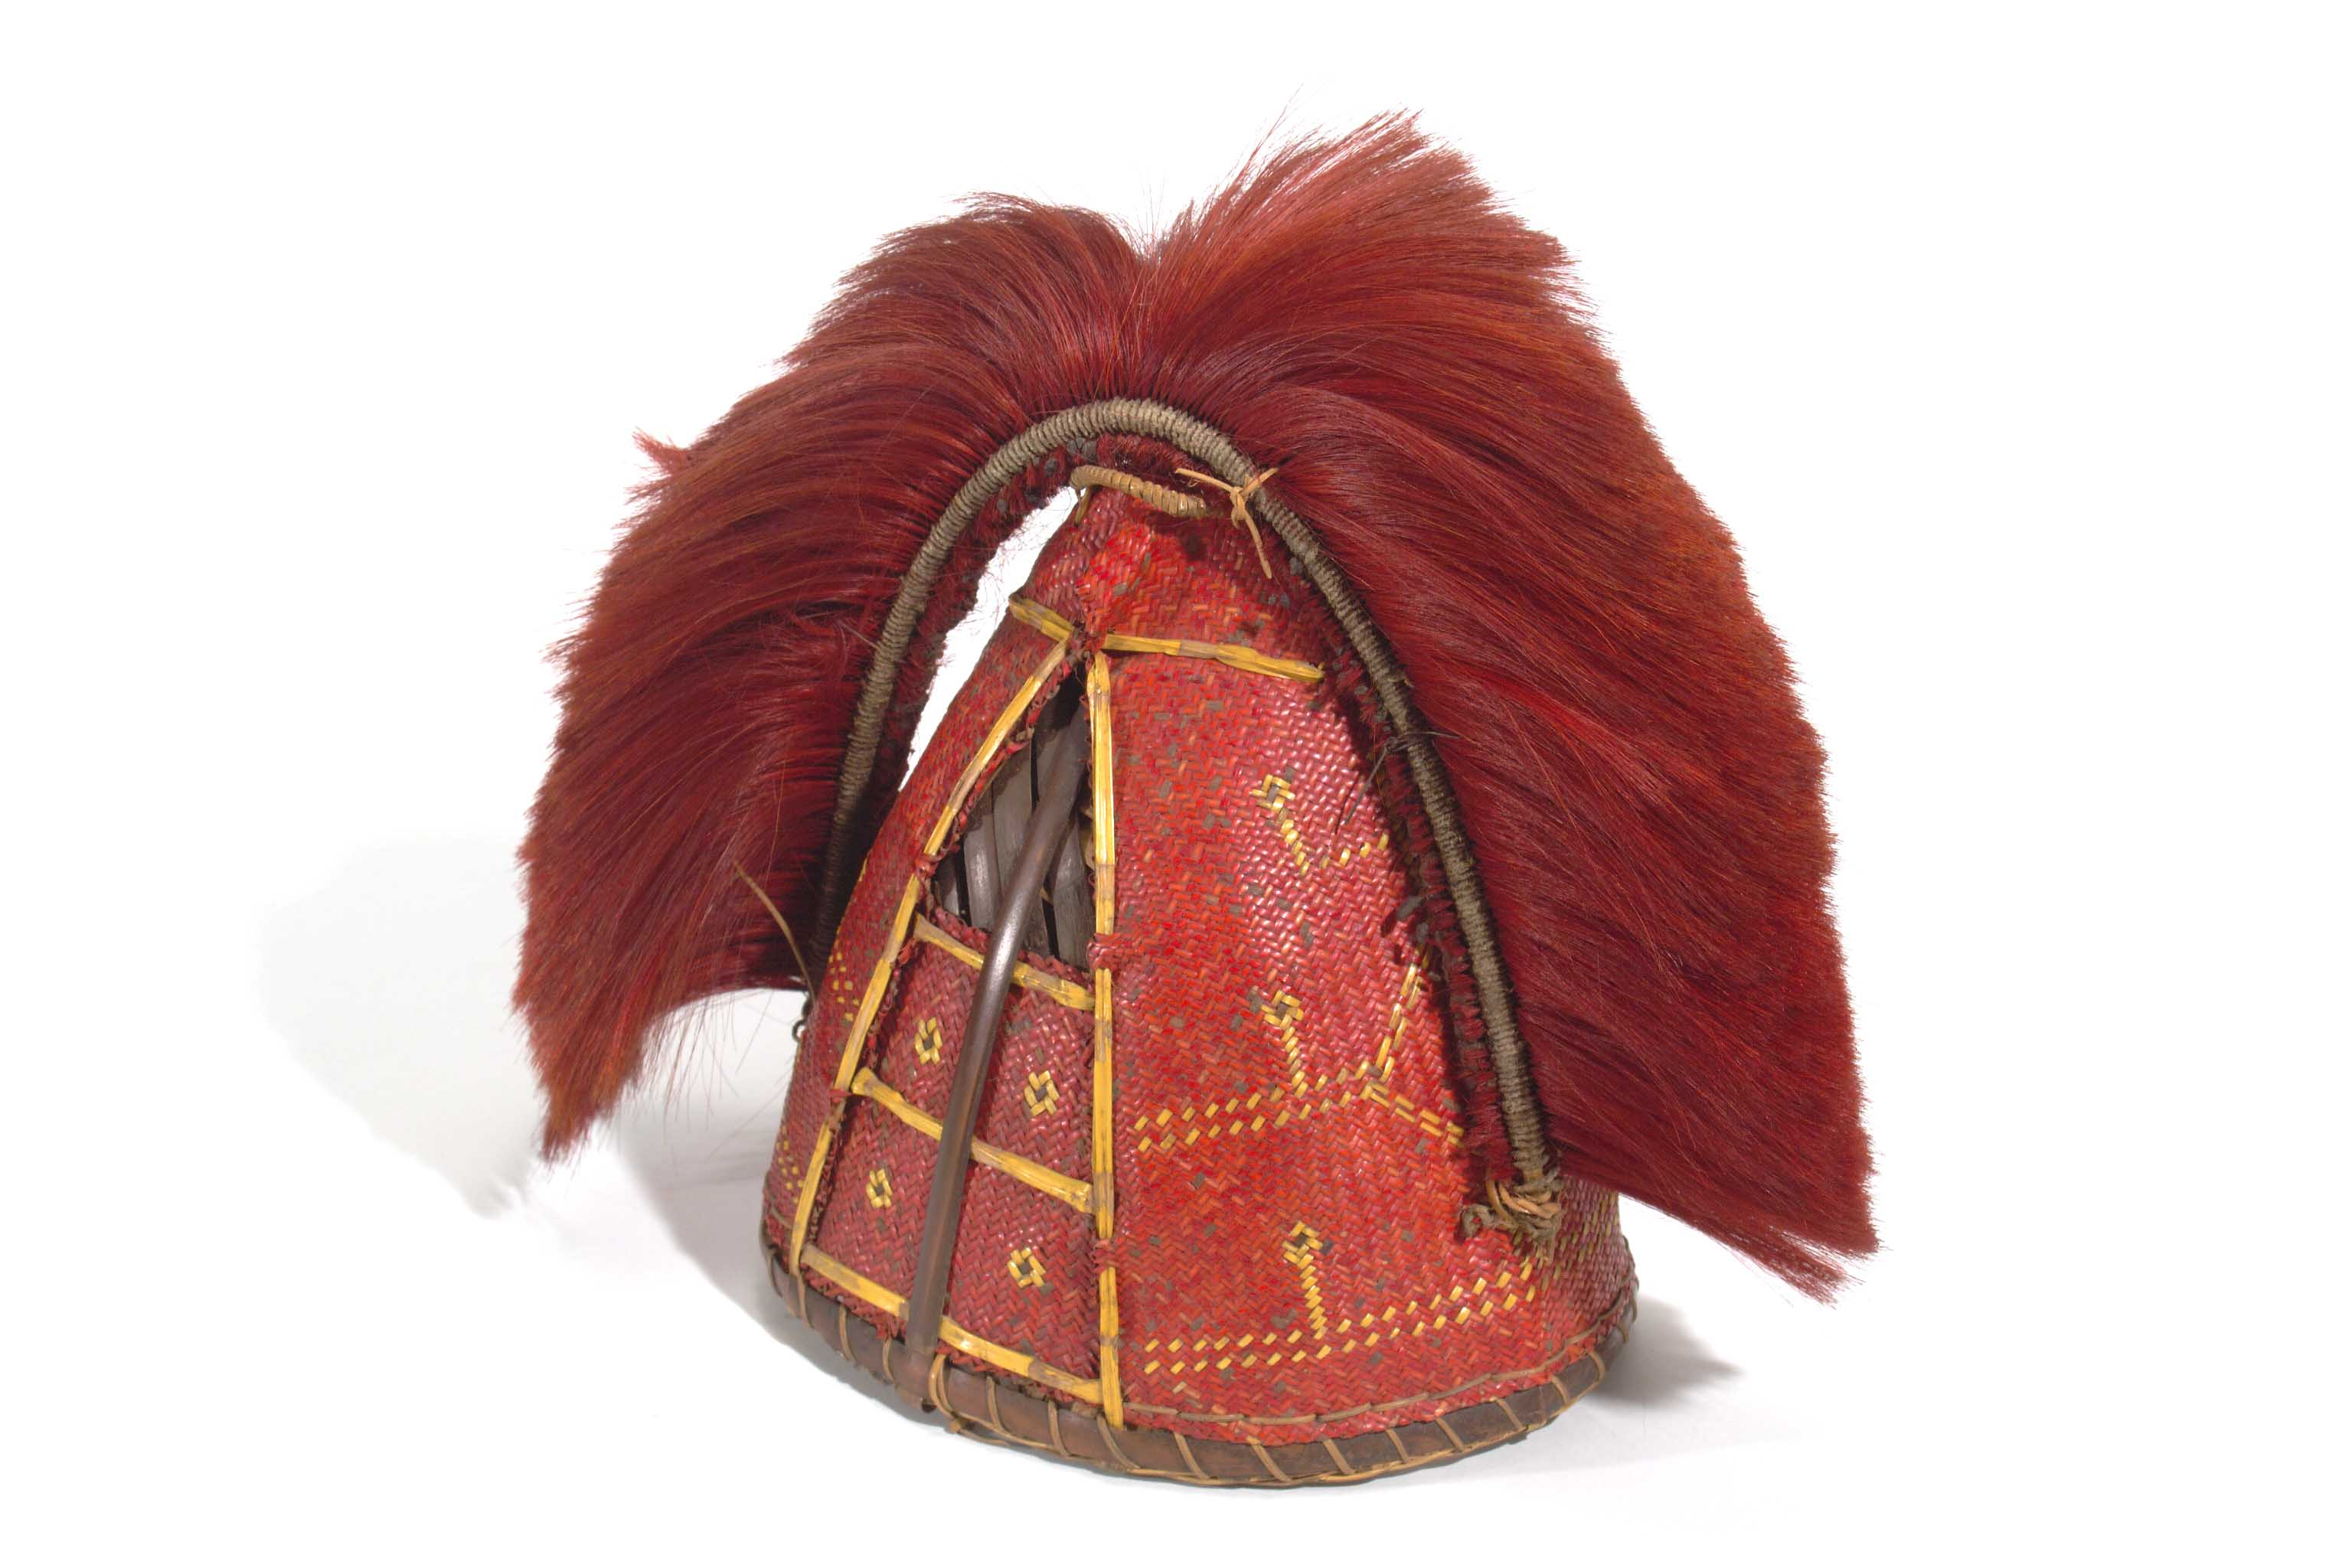 Naga basketry helmet with crest of hair from Upper Chindwin,Burma. Collected by the Vernay-Hopwood Chindwin Expedition in 1935. American Museum of Natural History 70.0/6374.